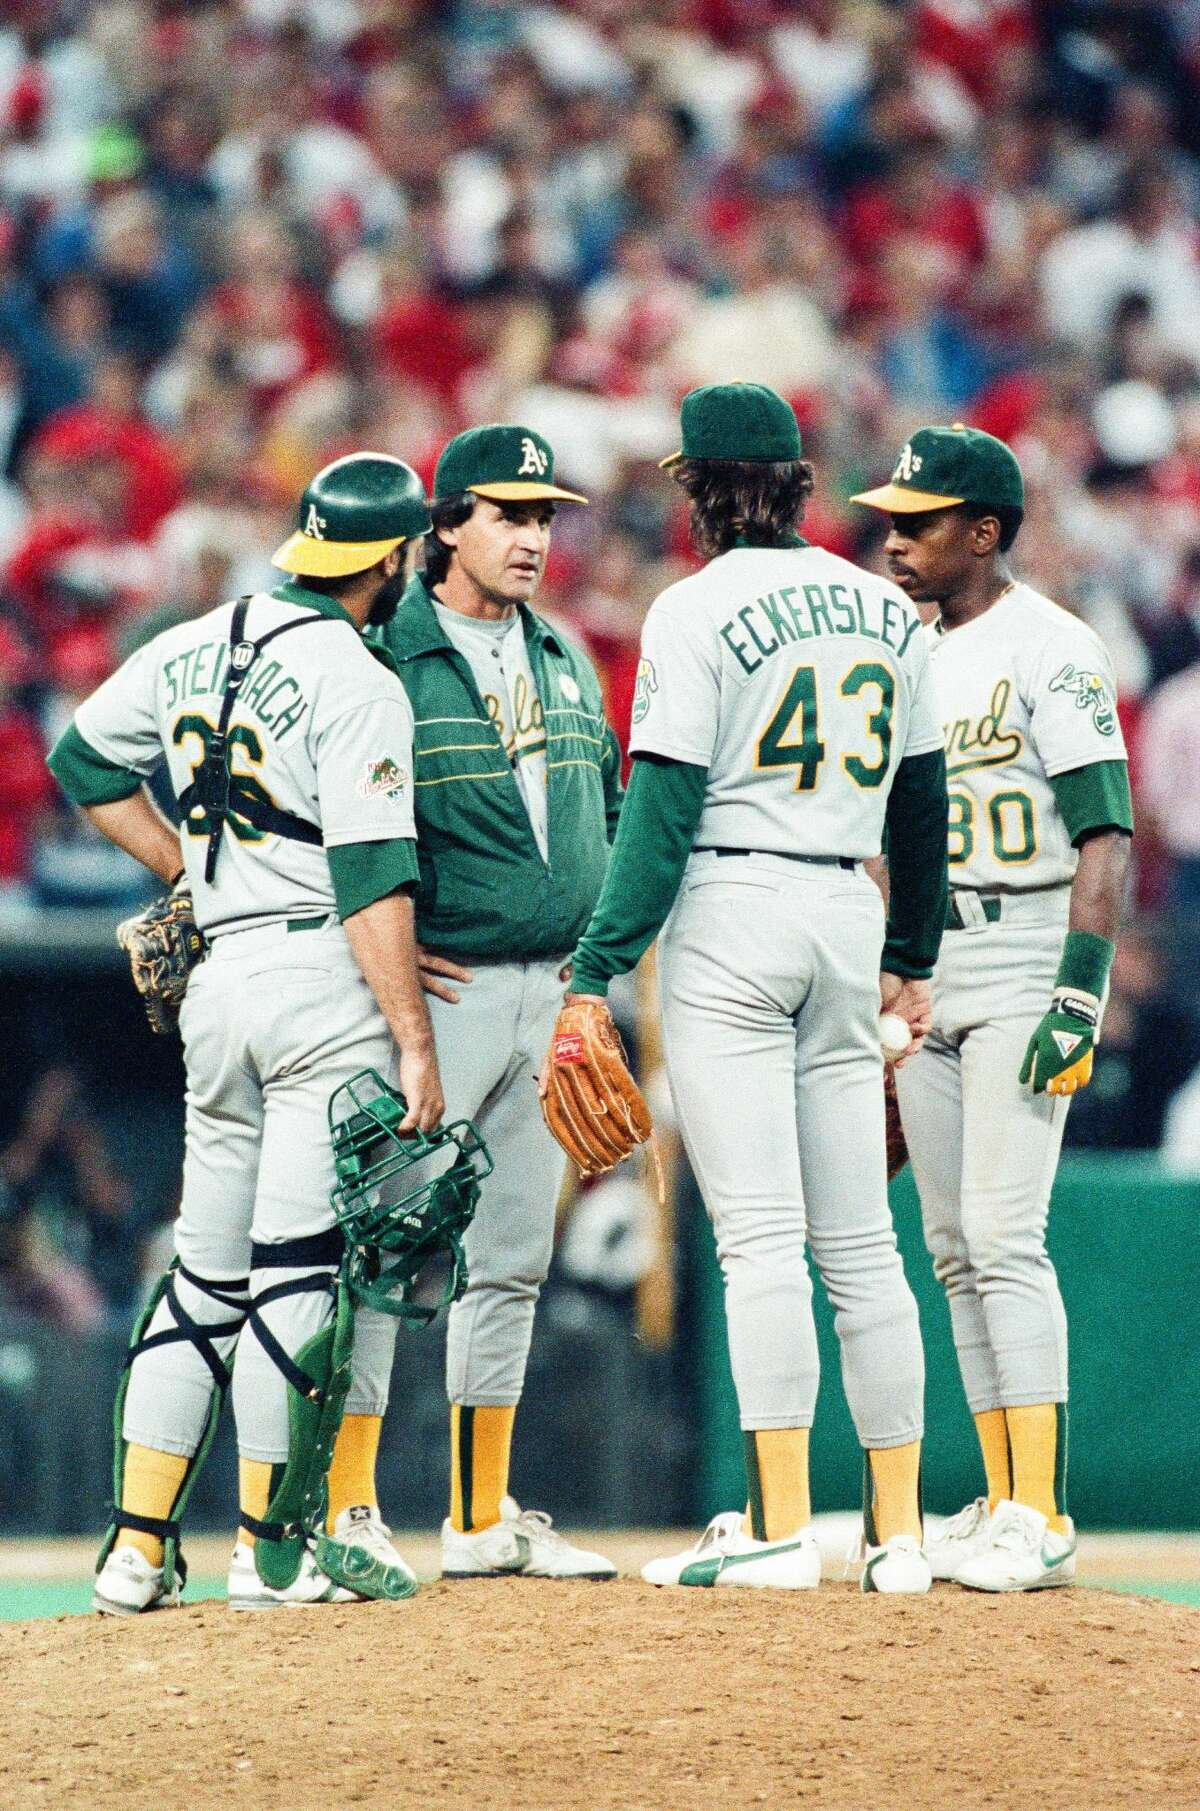 Tony La Russa talks with Dennis Eckersley of the Oakland Athletics during the 1990 World Series against the Cincinnati Reds at Riverfront Stadium in Cincinnati, Ohio.